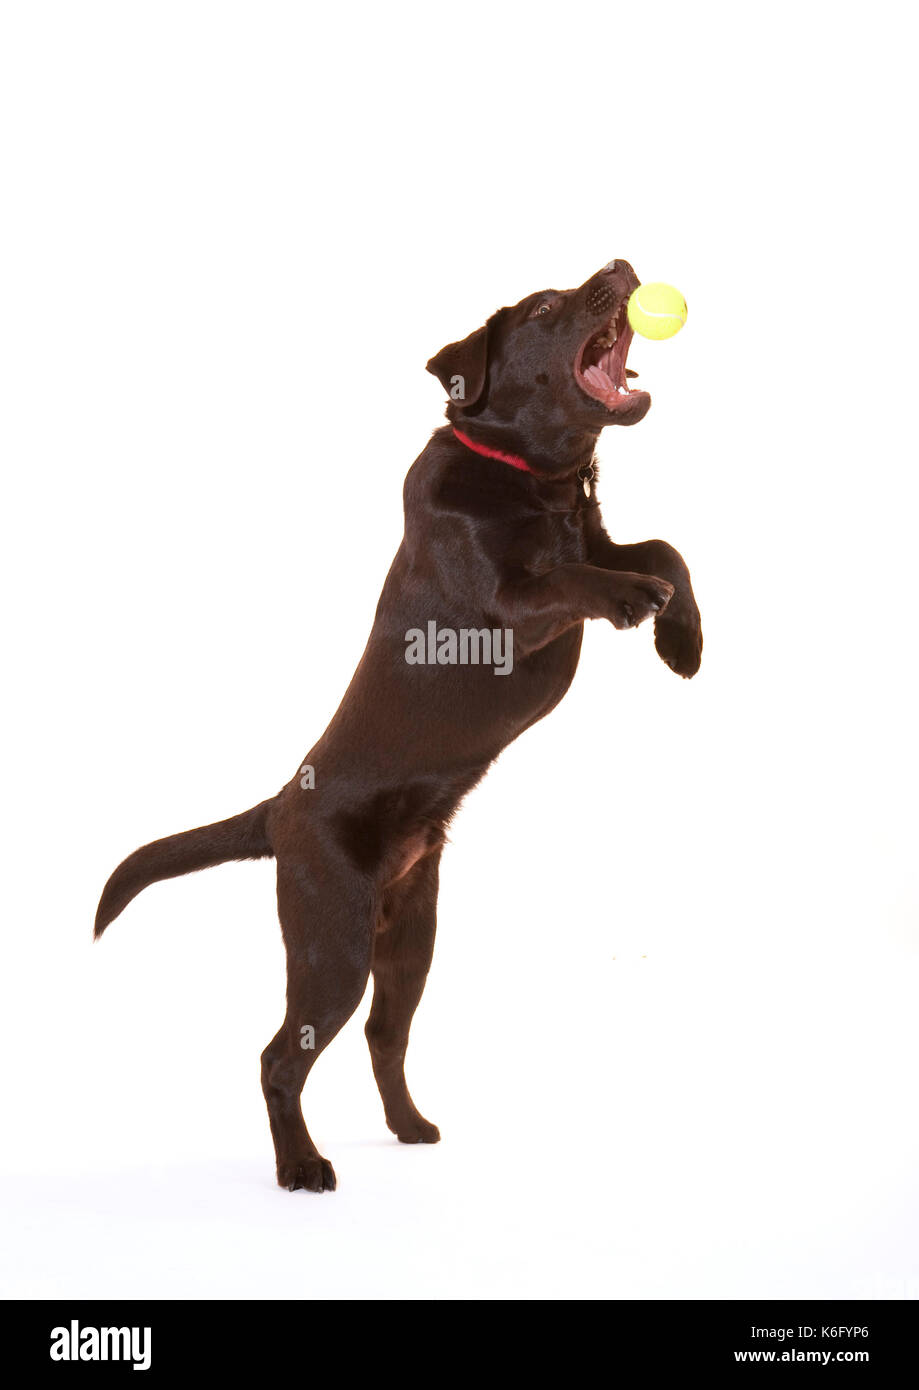 6 month old Labrador Dog, in studio, UK, Chocolate brown colour, jumping up catching ball, playing - Stock Image